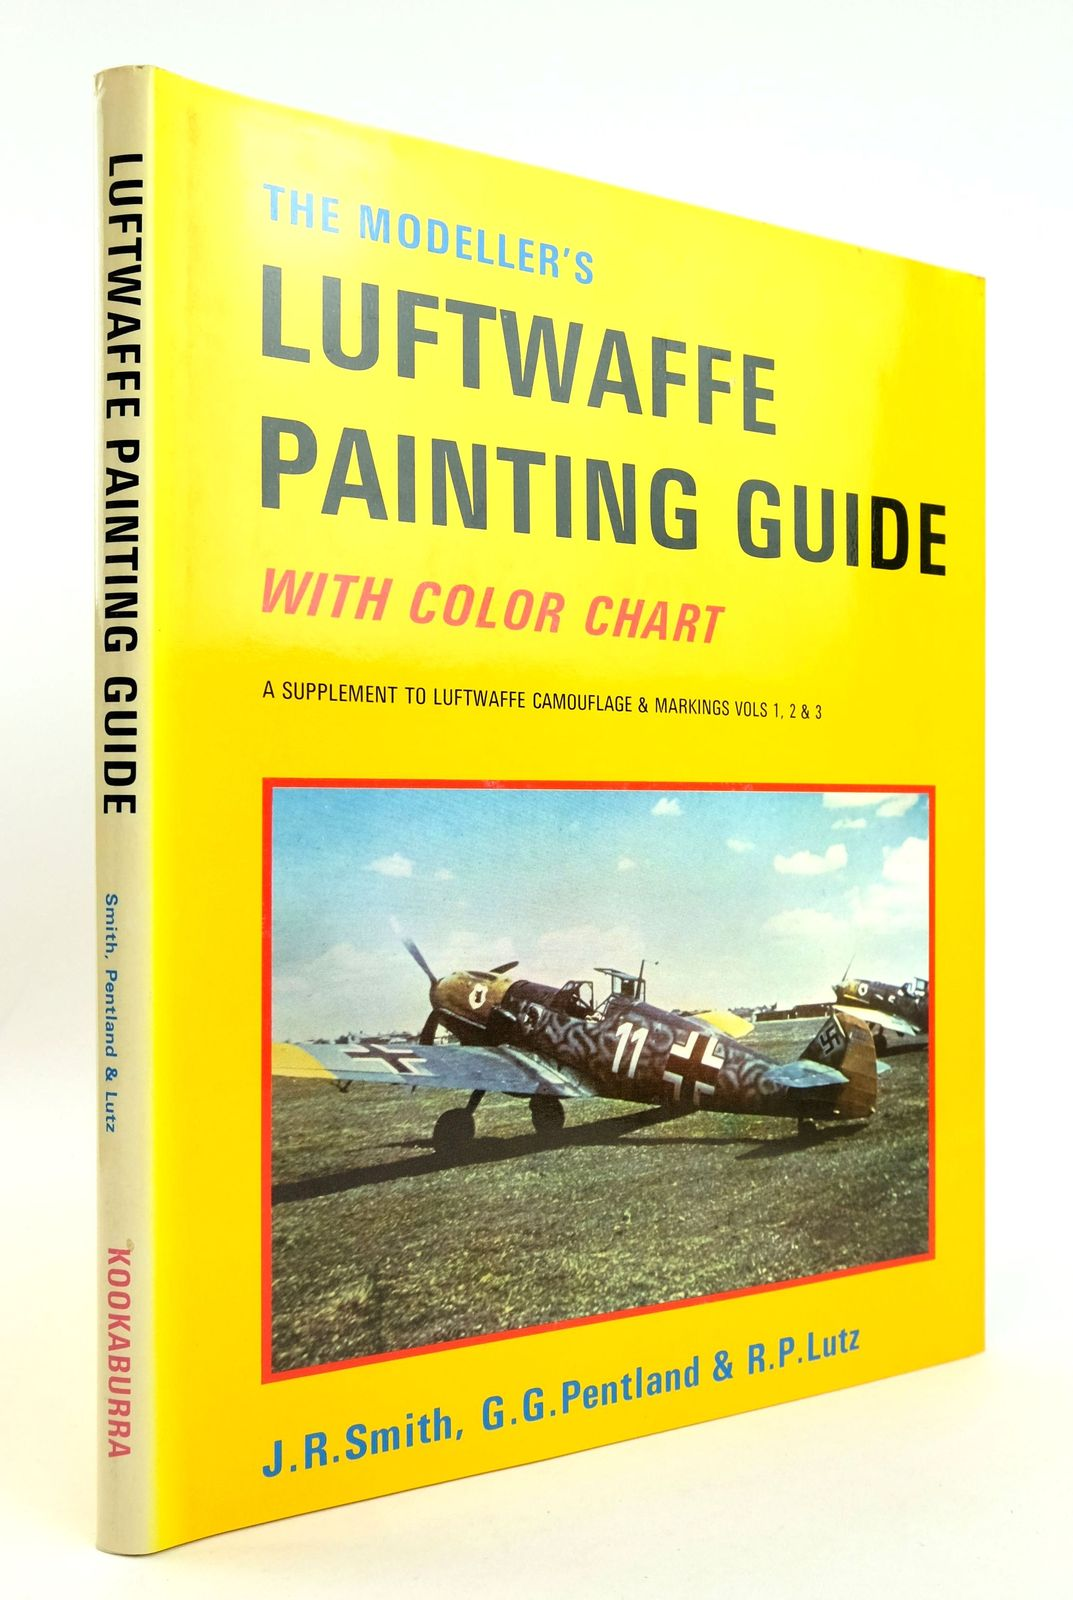 Photo of THE MODELLER'S LUFTWAFFE PAINTING GUIDE written by Smith, J.R. Pentland, G.G. Lutz, R.P. illustrated by Pentland, G.G. published by Kookaburra Technical Publications (STOCK CODE: 1819026)  for sale by Stella & Rose's Books